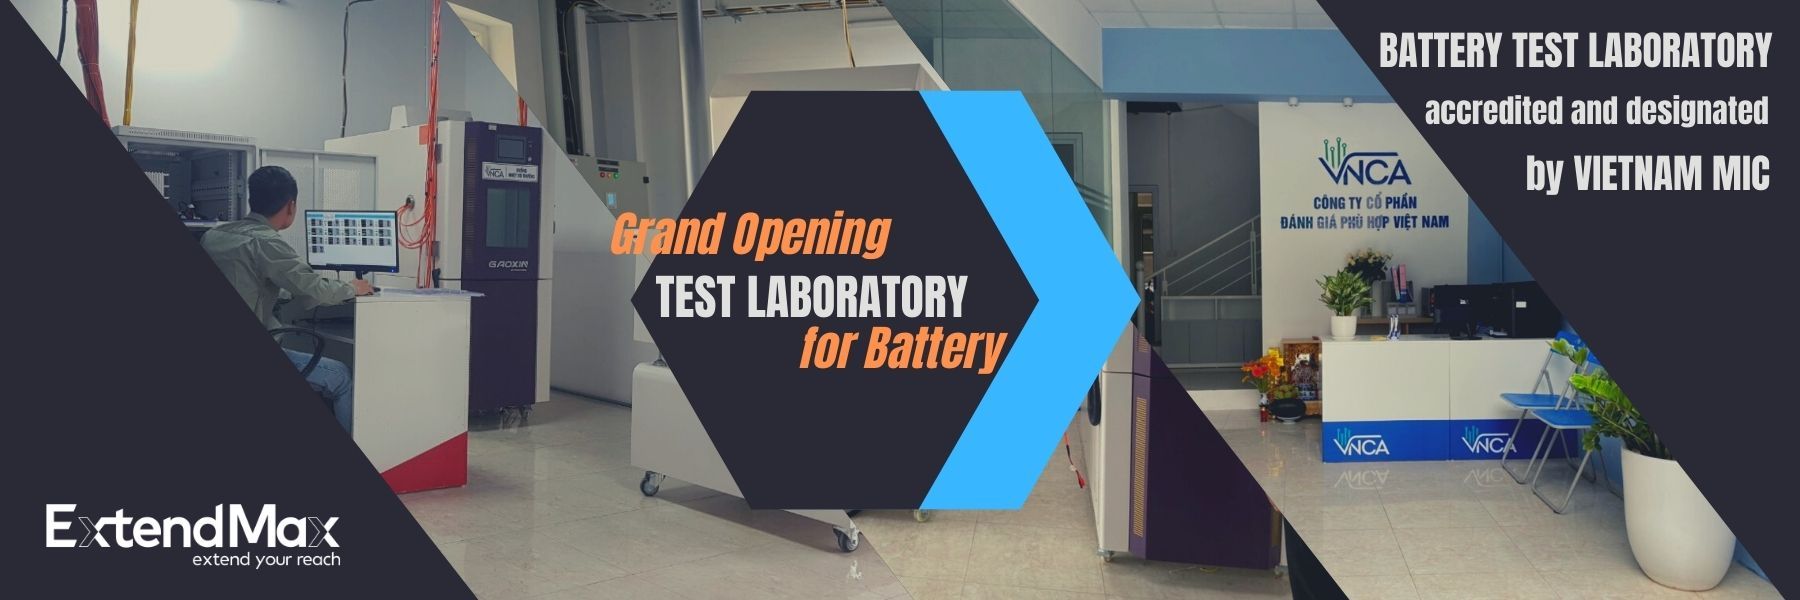 https://extendmax.vn/vnca-laboratory-of-extendmax-designated-by-the-vietnam-mic-for-battery-testing